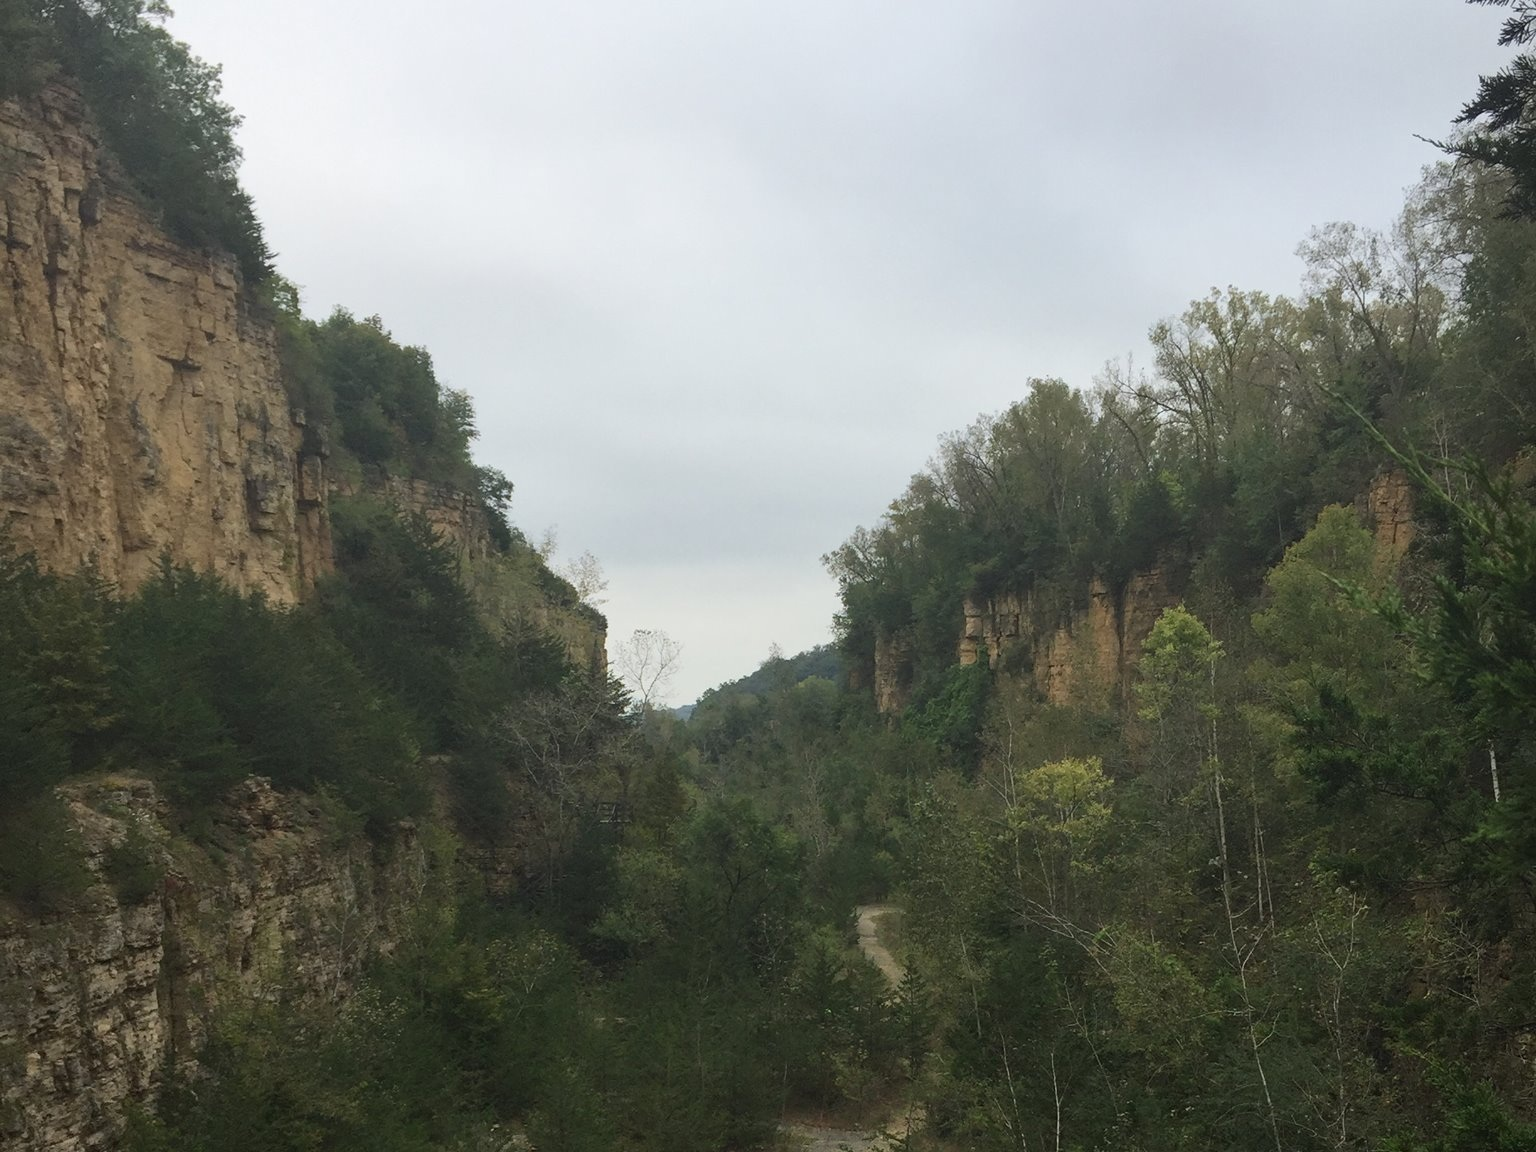 Mines of Spain State Park - A rugged and interesting state park overlooking the Mississippi River in Dubuque